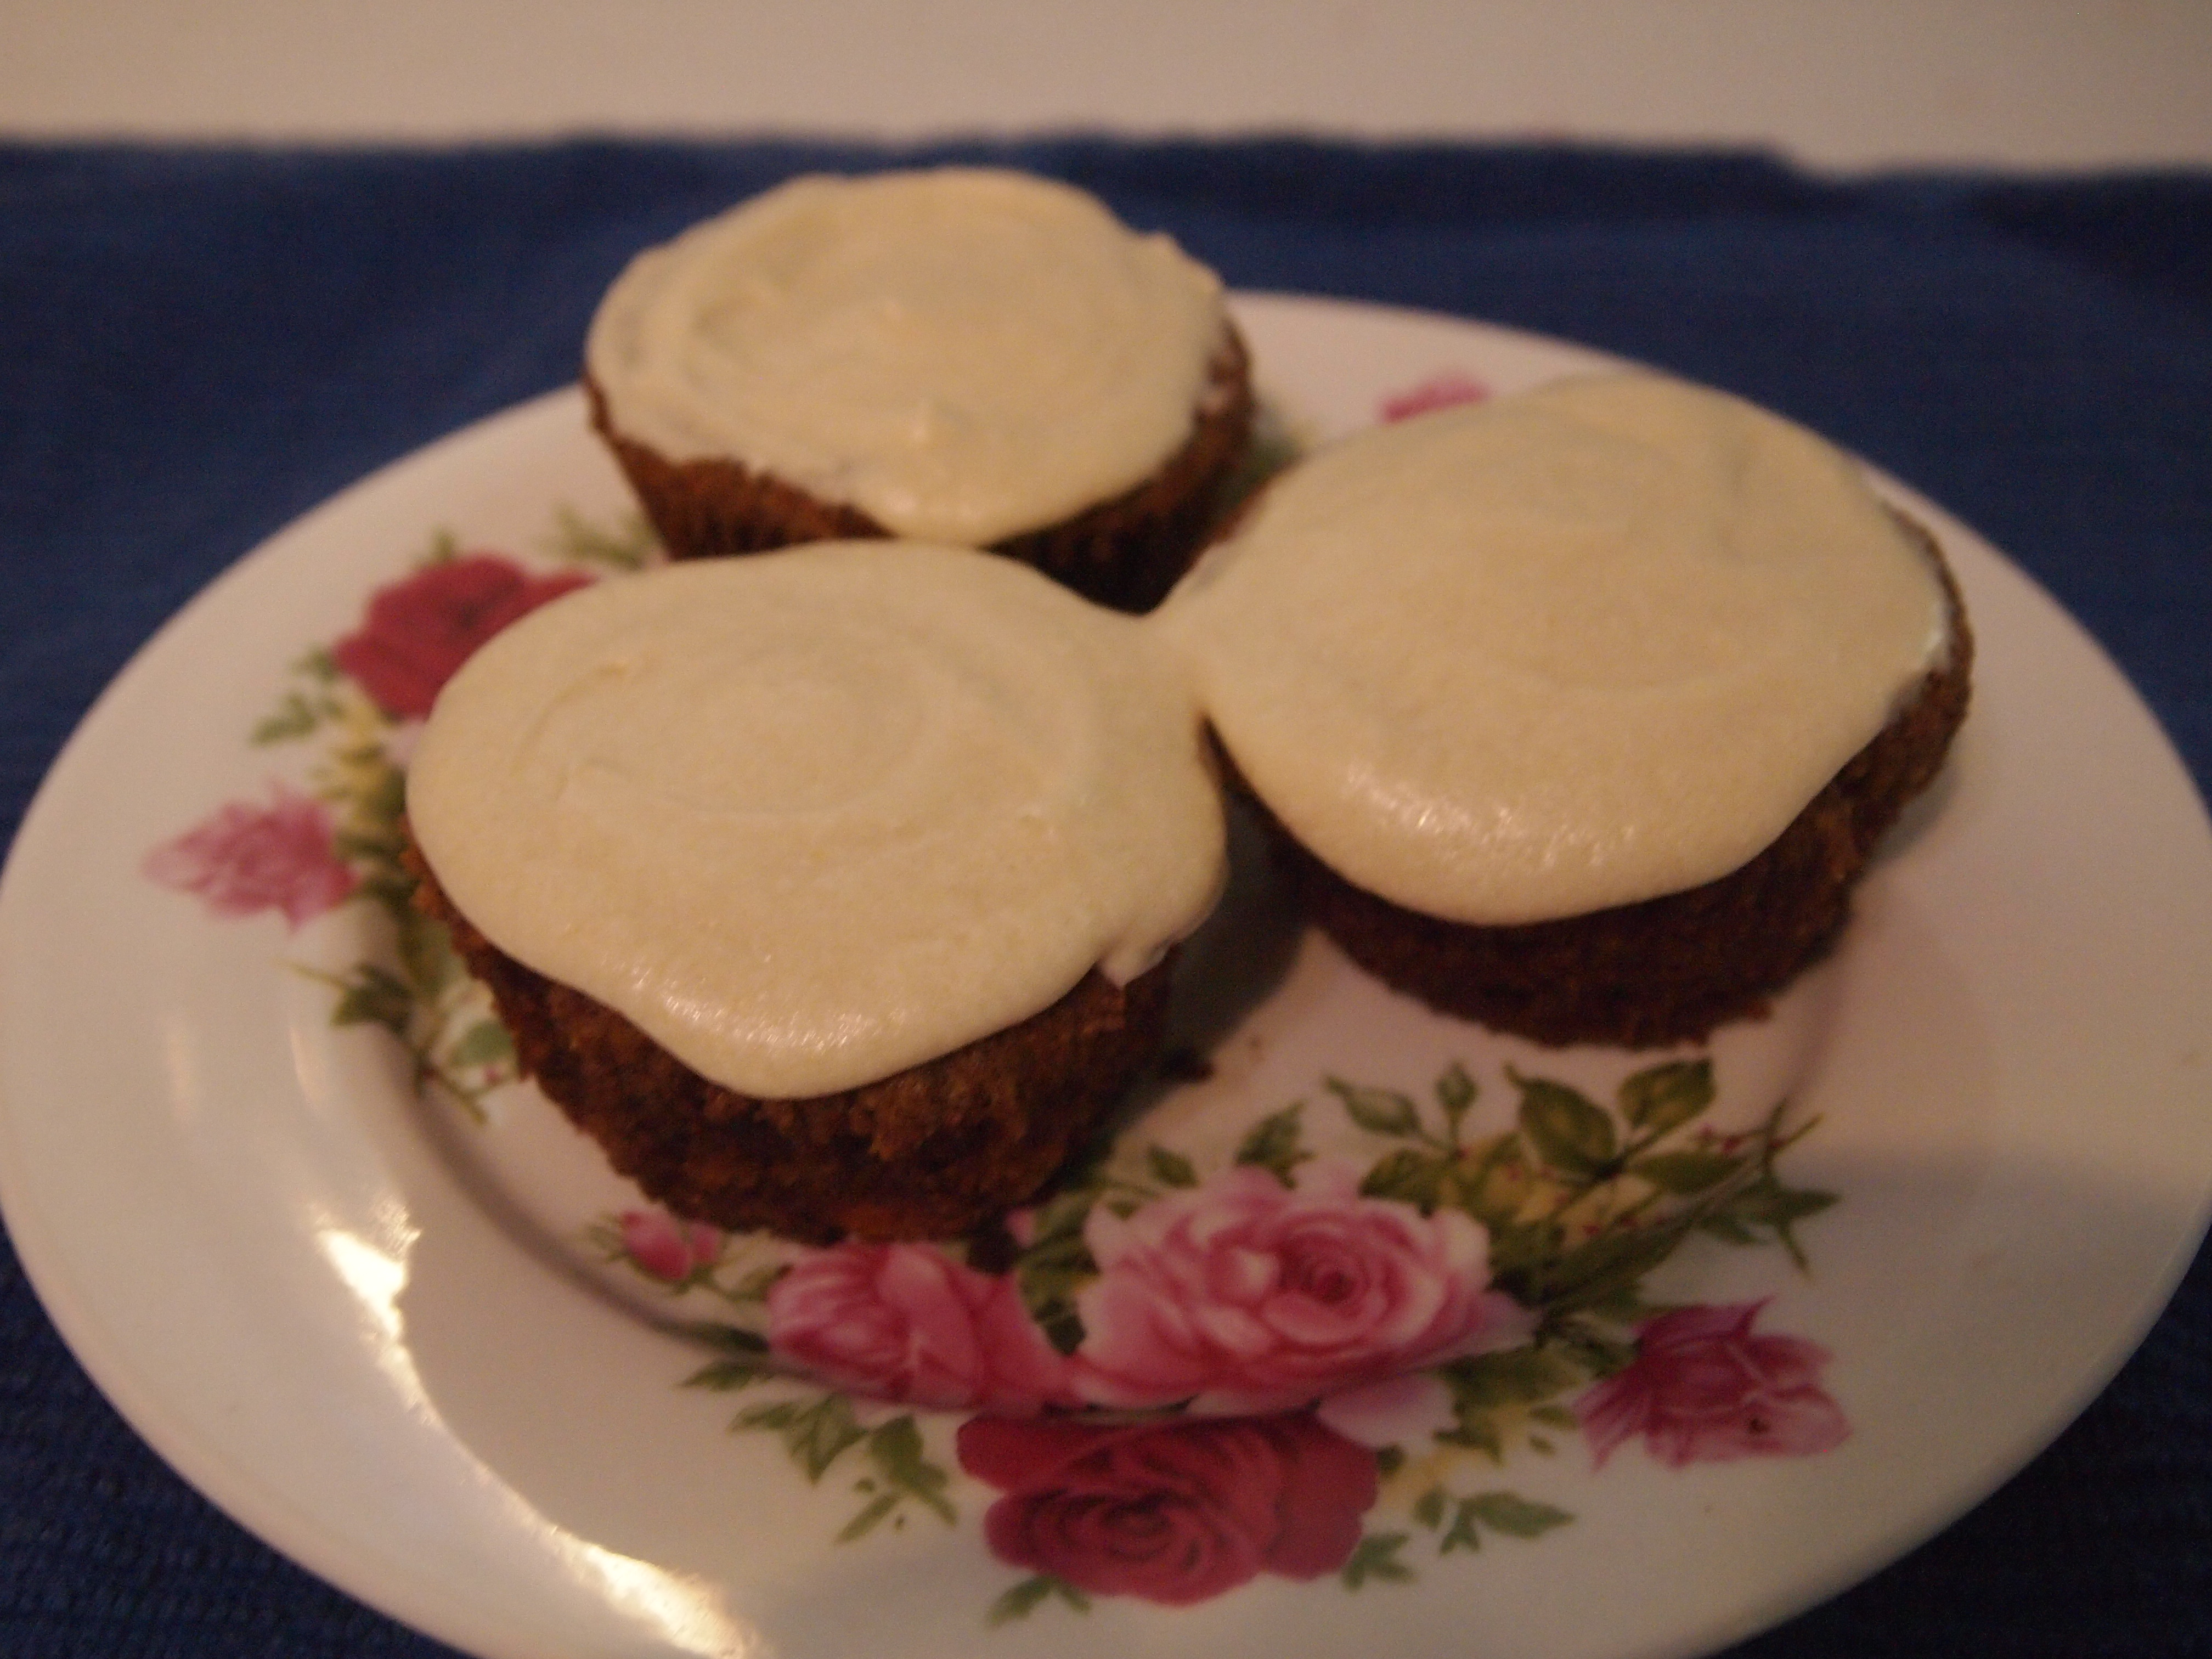 Gluten, Dairy and Egg Free Over-spiced Carrot Cupcakes with Orange Icing